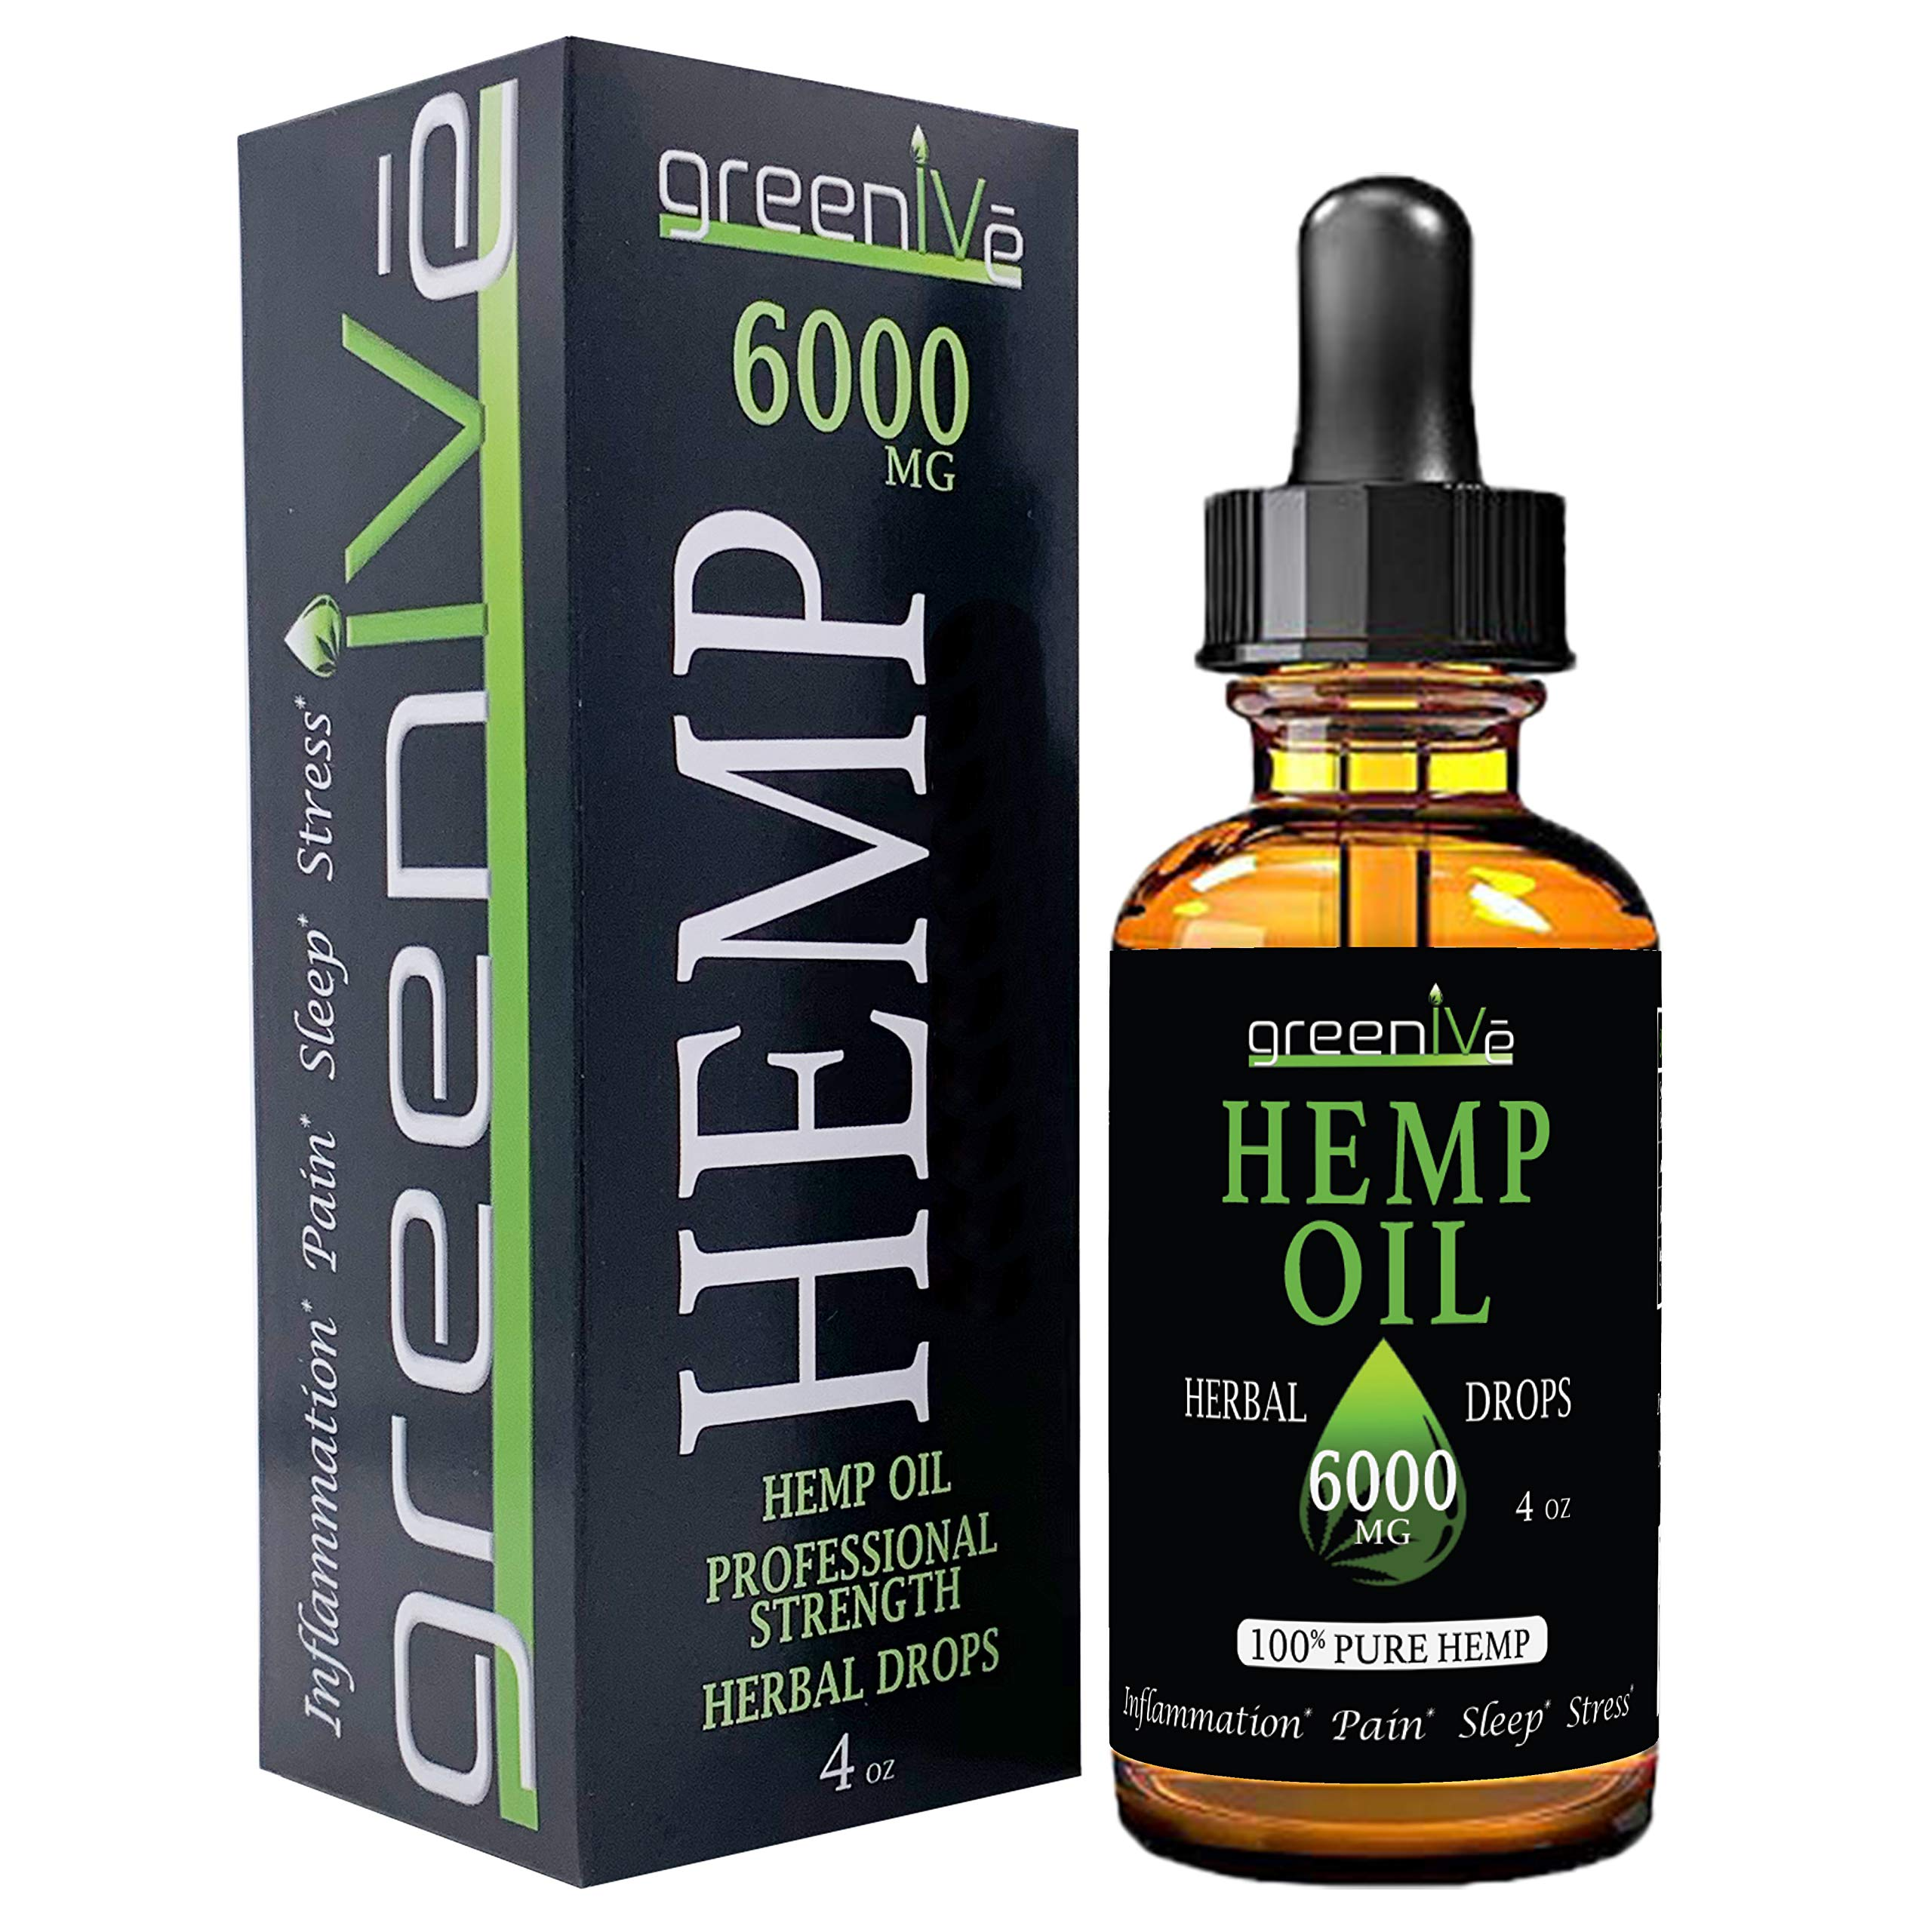 GreenIVe - Hemp Extract - Premium Quality Hemp Plant Extract - USA farmed and Bottled - Exclusively on Amazon (4 Ounce 6,000mg, Natural) by Greenive